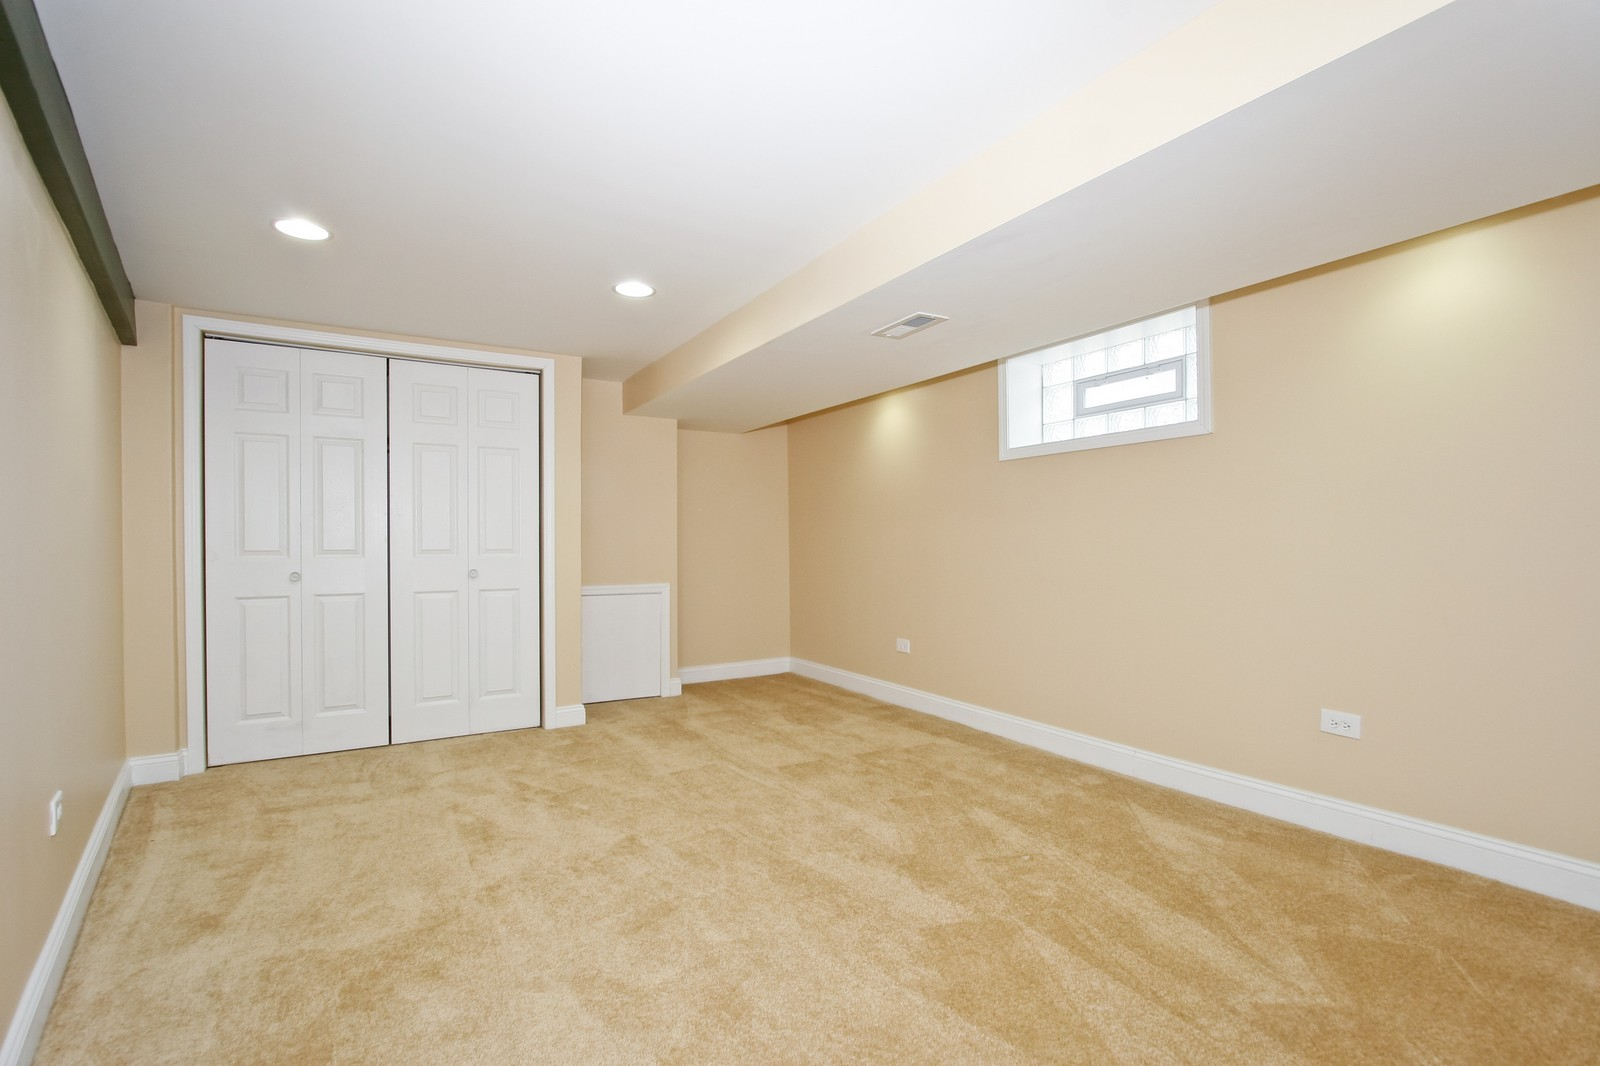 Real Estate Photography - 1025 E 156th St, Dolton, IL, 60419 - Master Bedroom